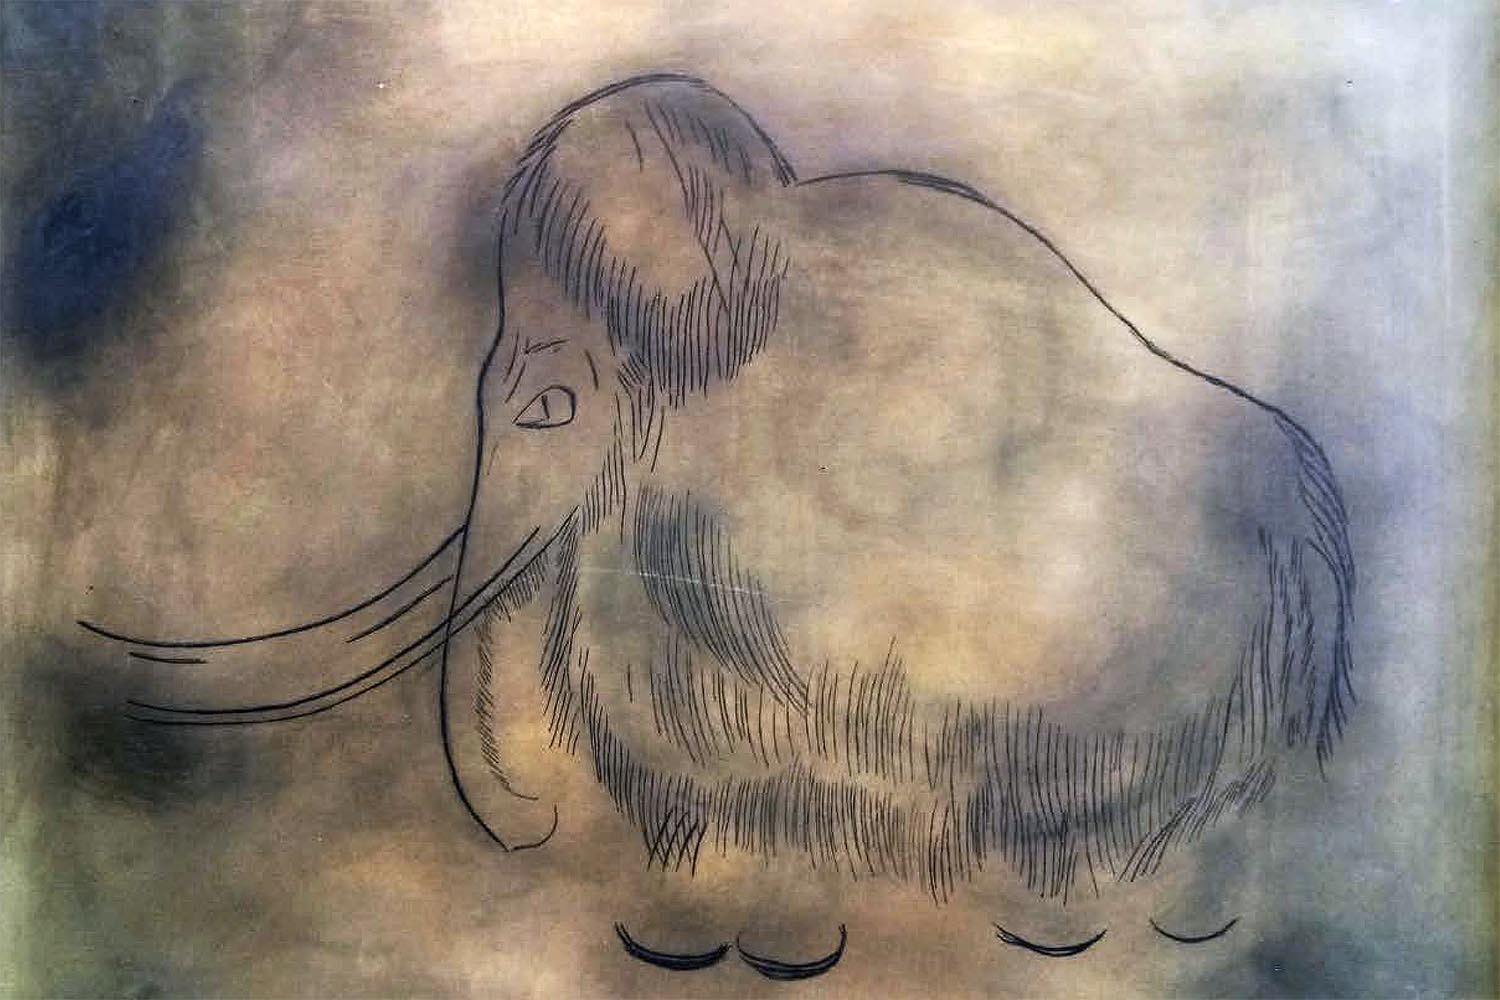 Max F. Fischinger After Paleolithic Cave Drawing of Woolly Mammoth from Font de Gaume, France Tübingon, Germany